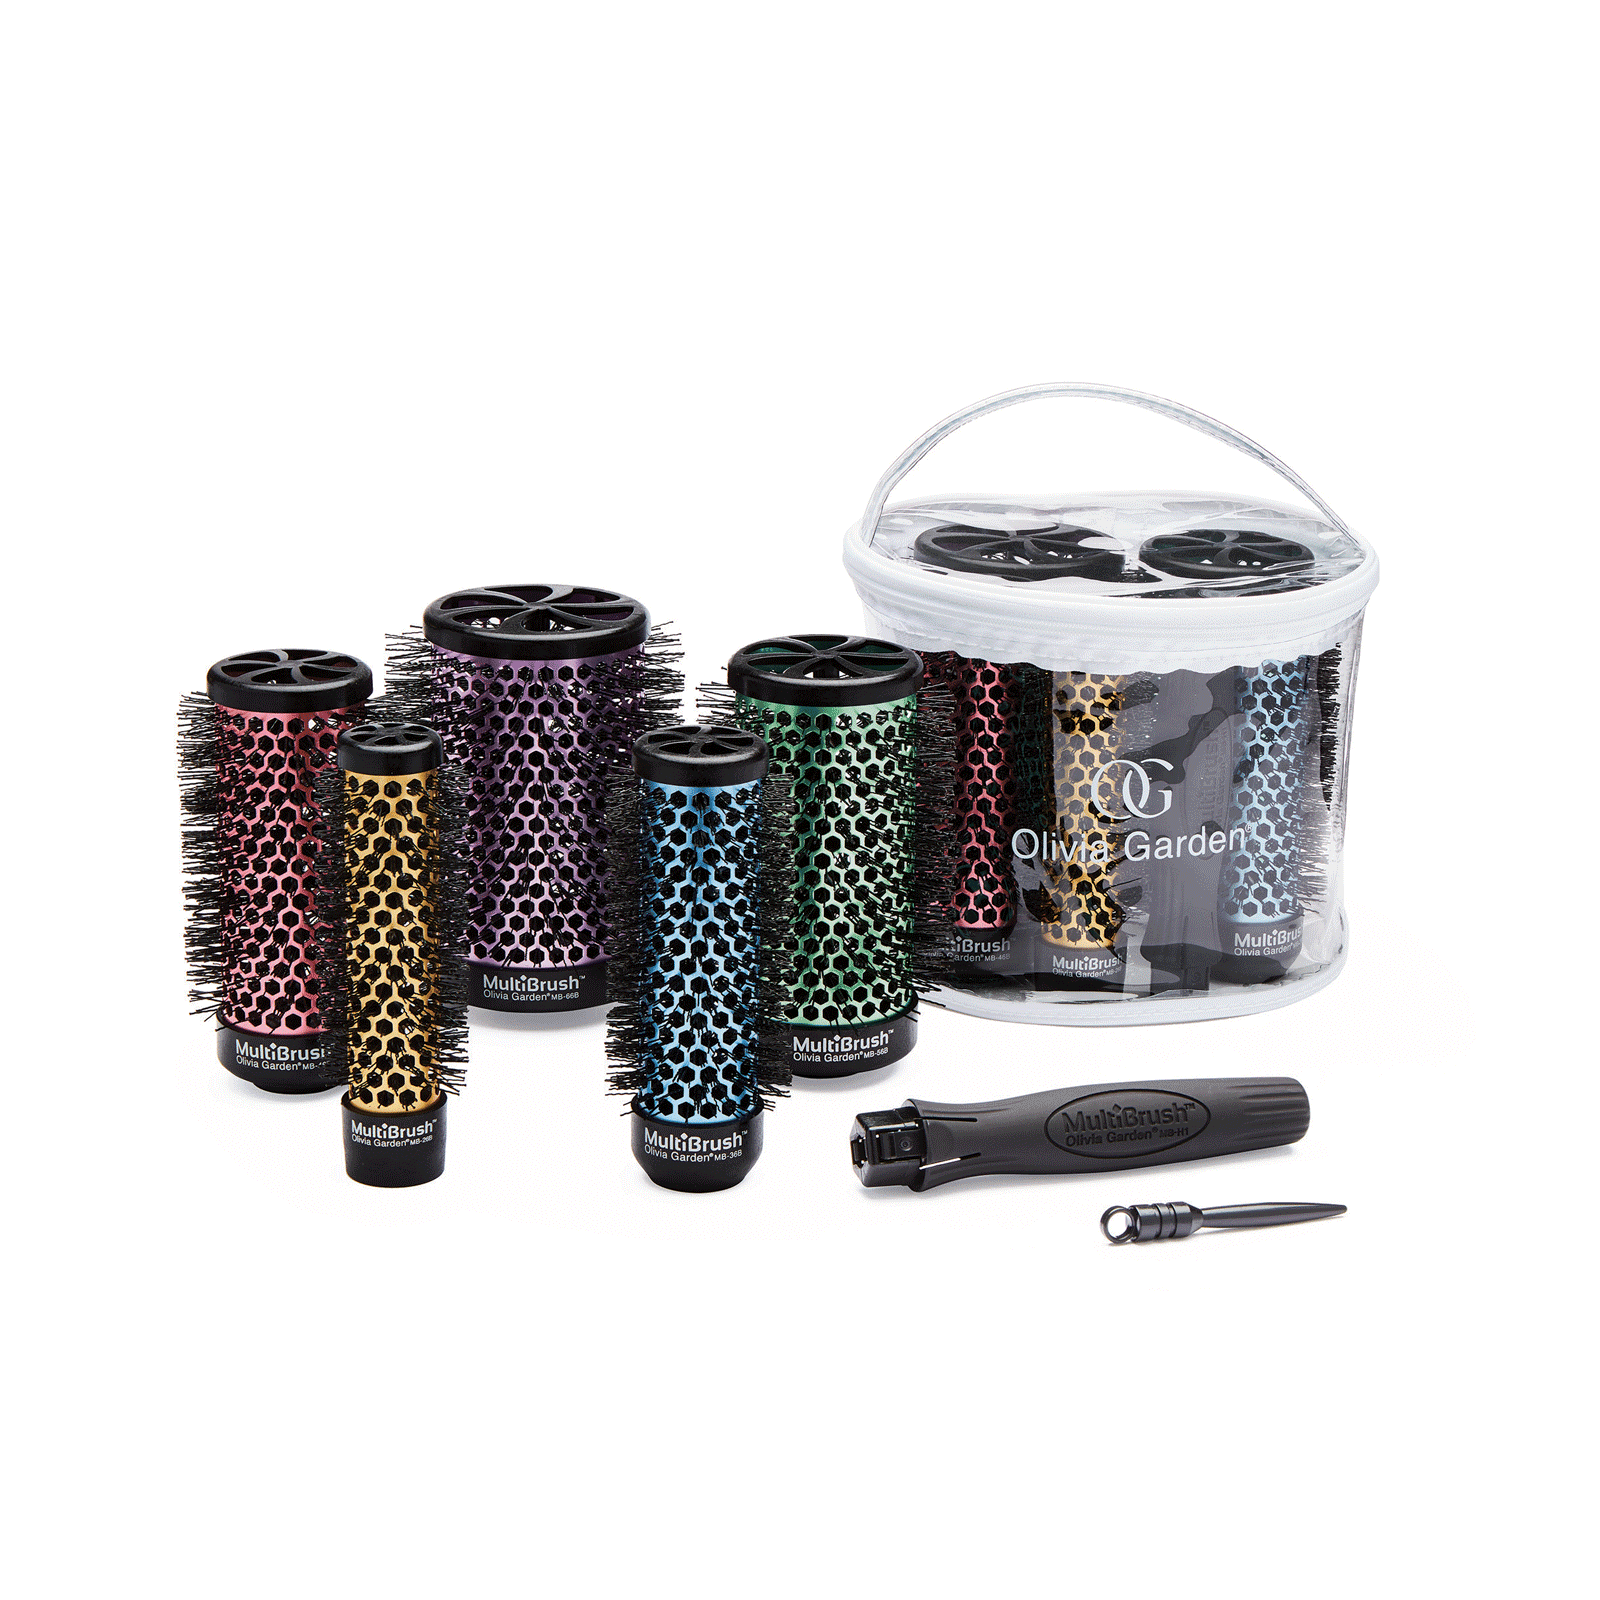 Multi Brush - 6 Piece Kit - 5 Barrels & Handle